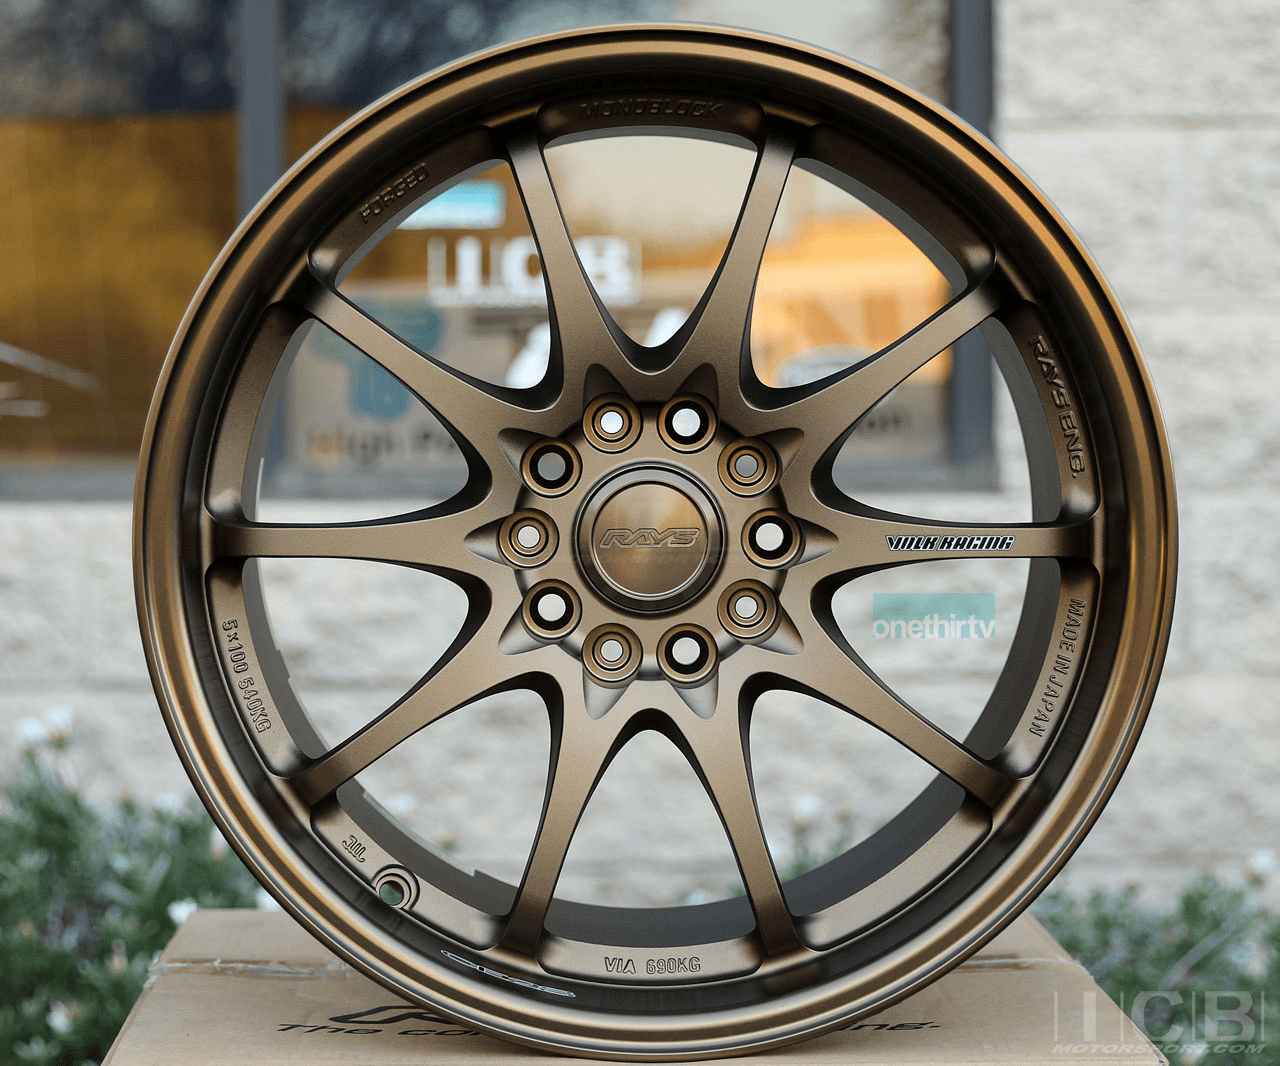 Rays Volk Racing CE28N Bronze Wheels Set 5X114.3 17X10 +50 Offset Concave Face